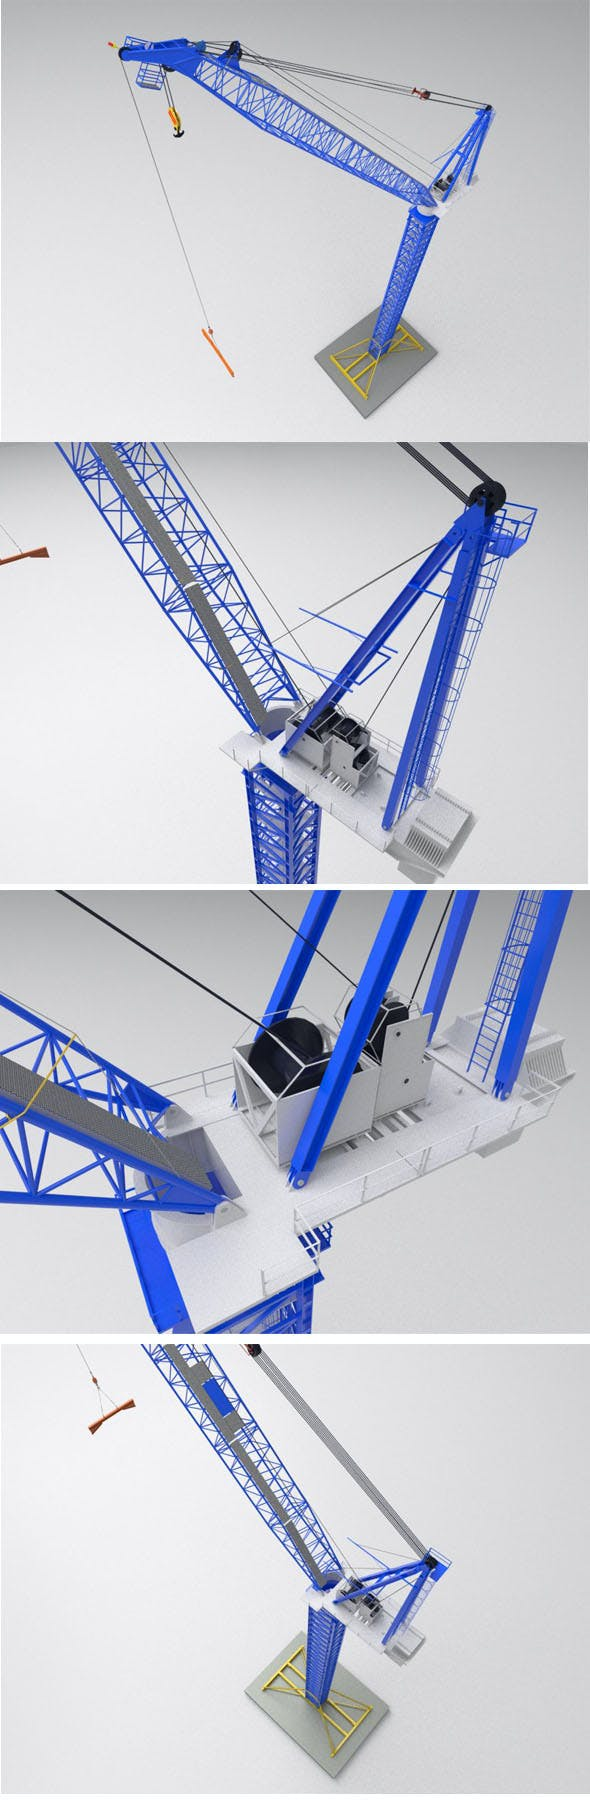 Favelle Favco M1280D TOWER crane - 3DOcean Item for Sale